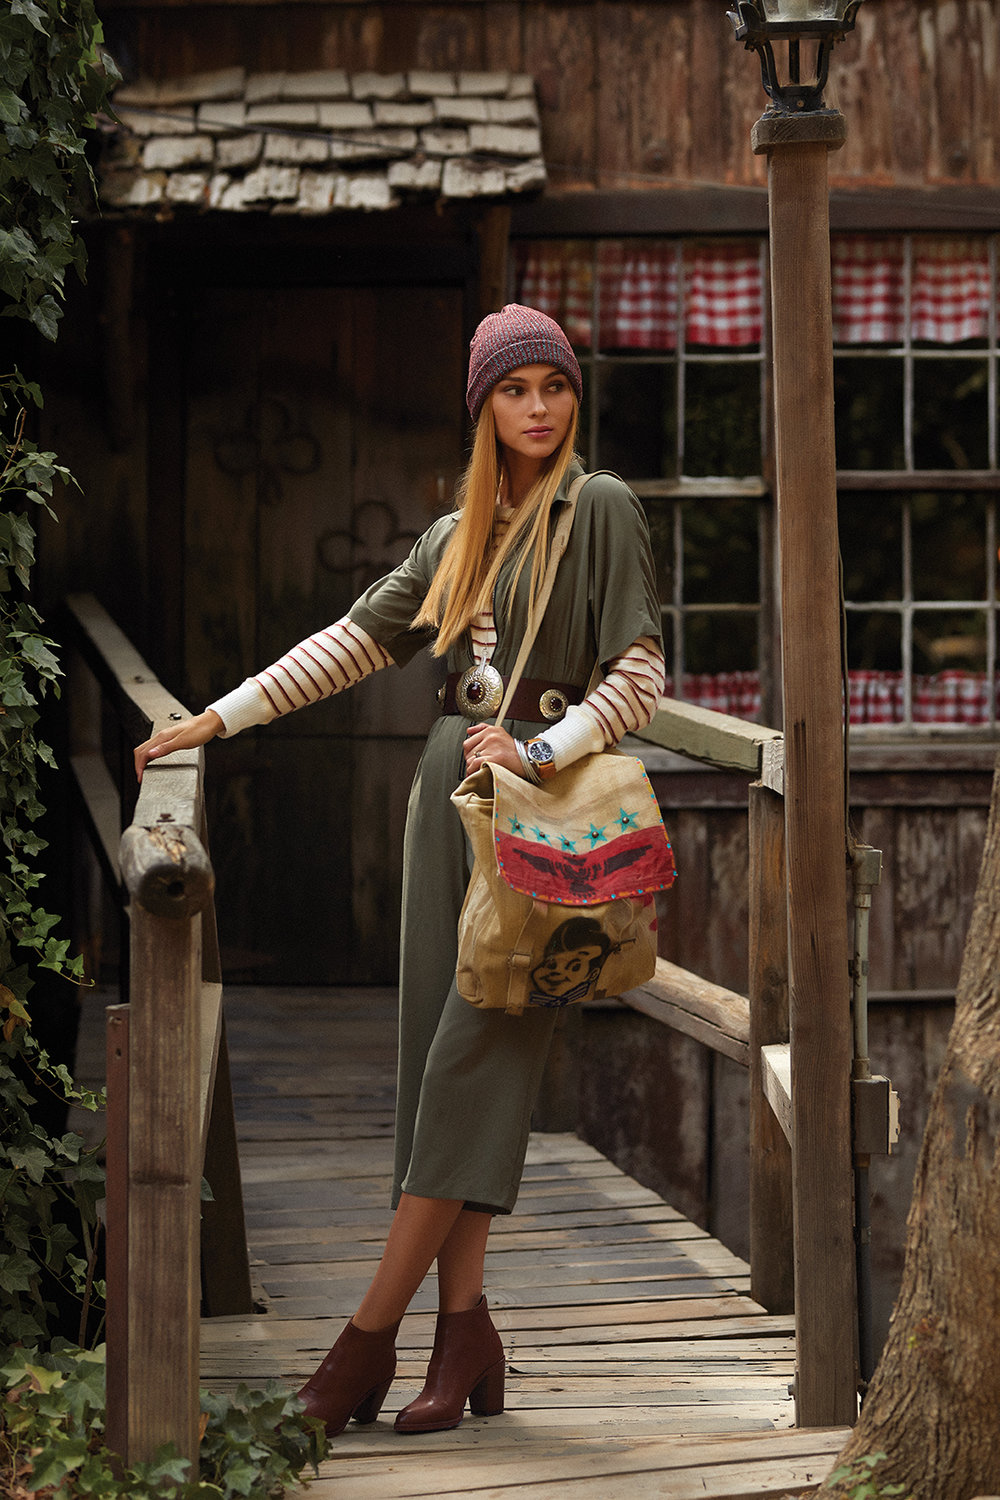 Jumper and boots, ROWAN. Sweater, AMBIANCE. Bag, LOVEWORN. Beanie and watch, ACE RIVINGTON. Belt, TIENDA HO. Necklace and earrings, LOVEBIRD. Bracelets, PLUM GOODS. Ring, ANTOINETTE.